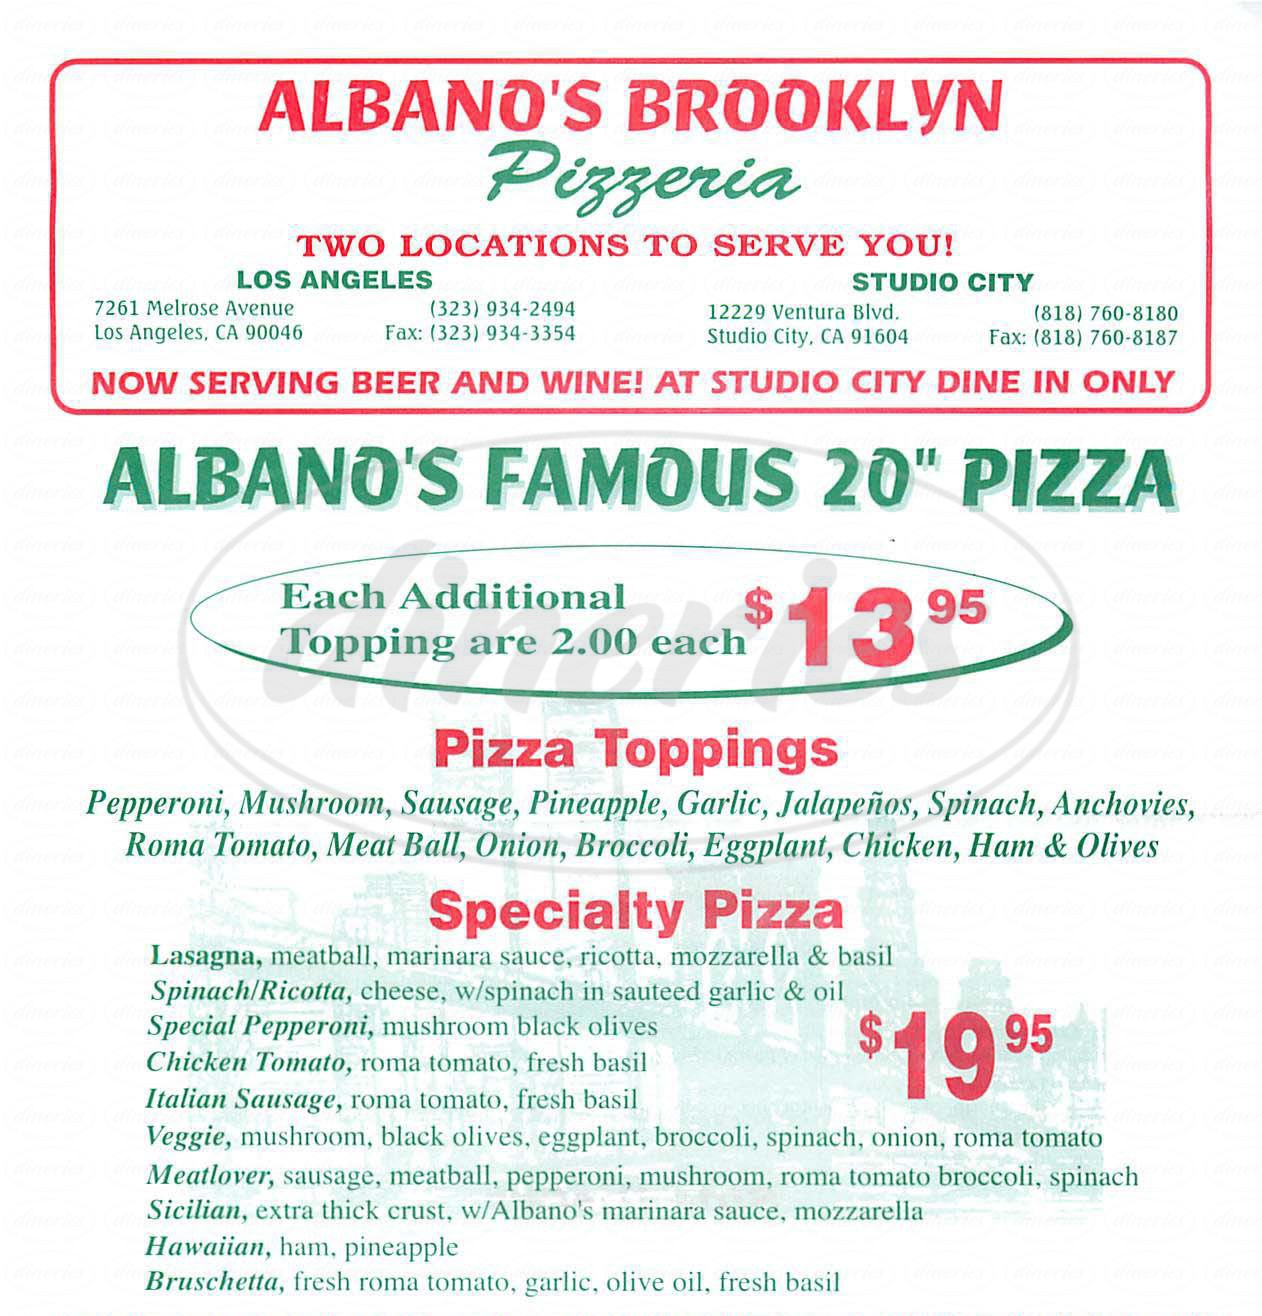 menu for Albano's Brooklyn Pizzeria